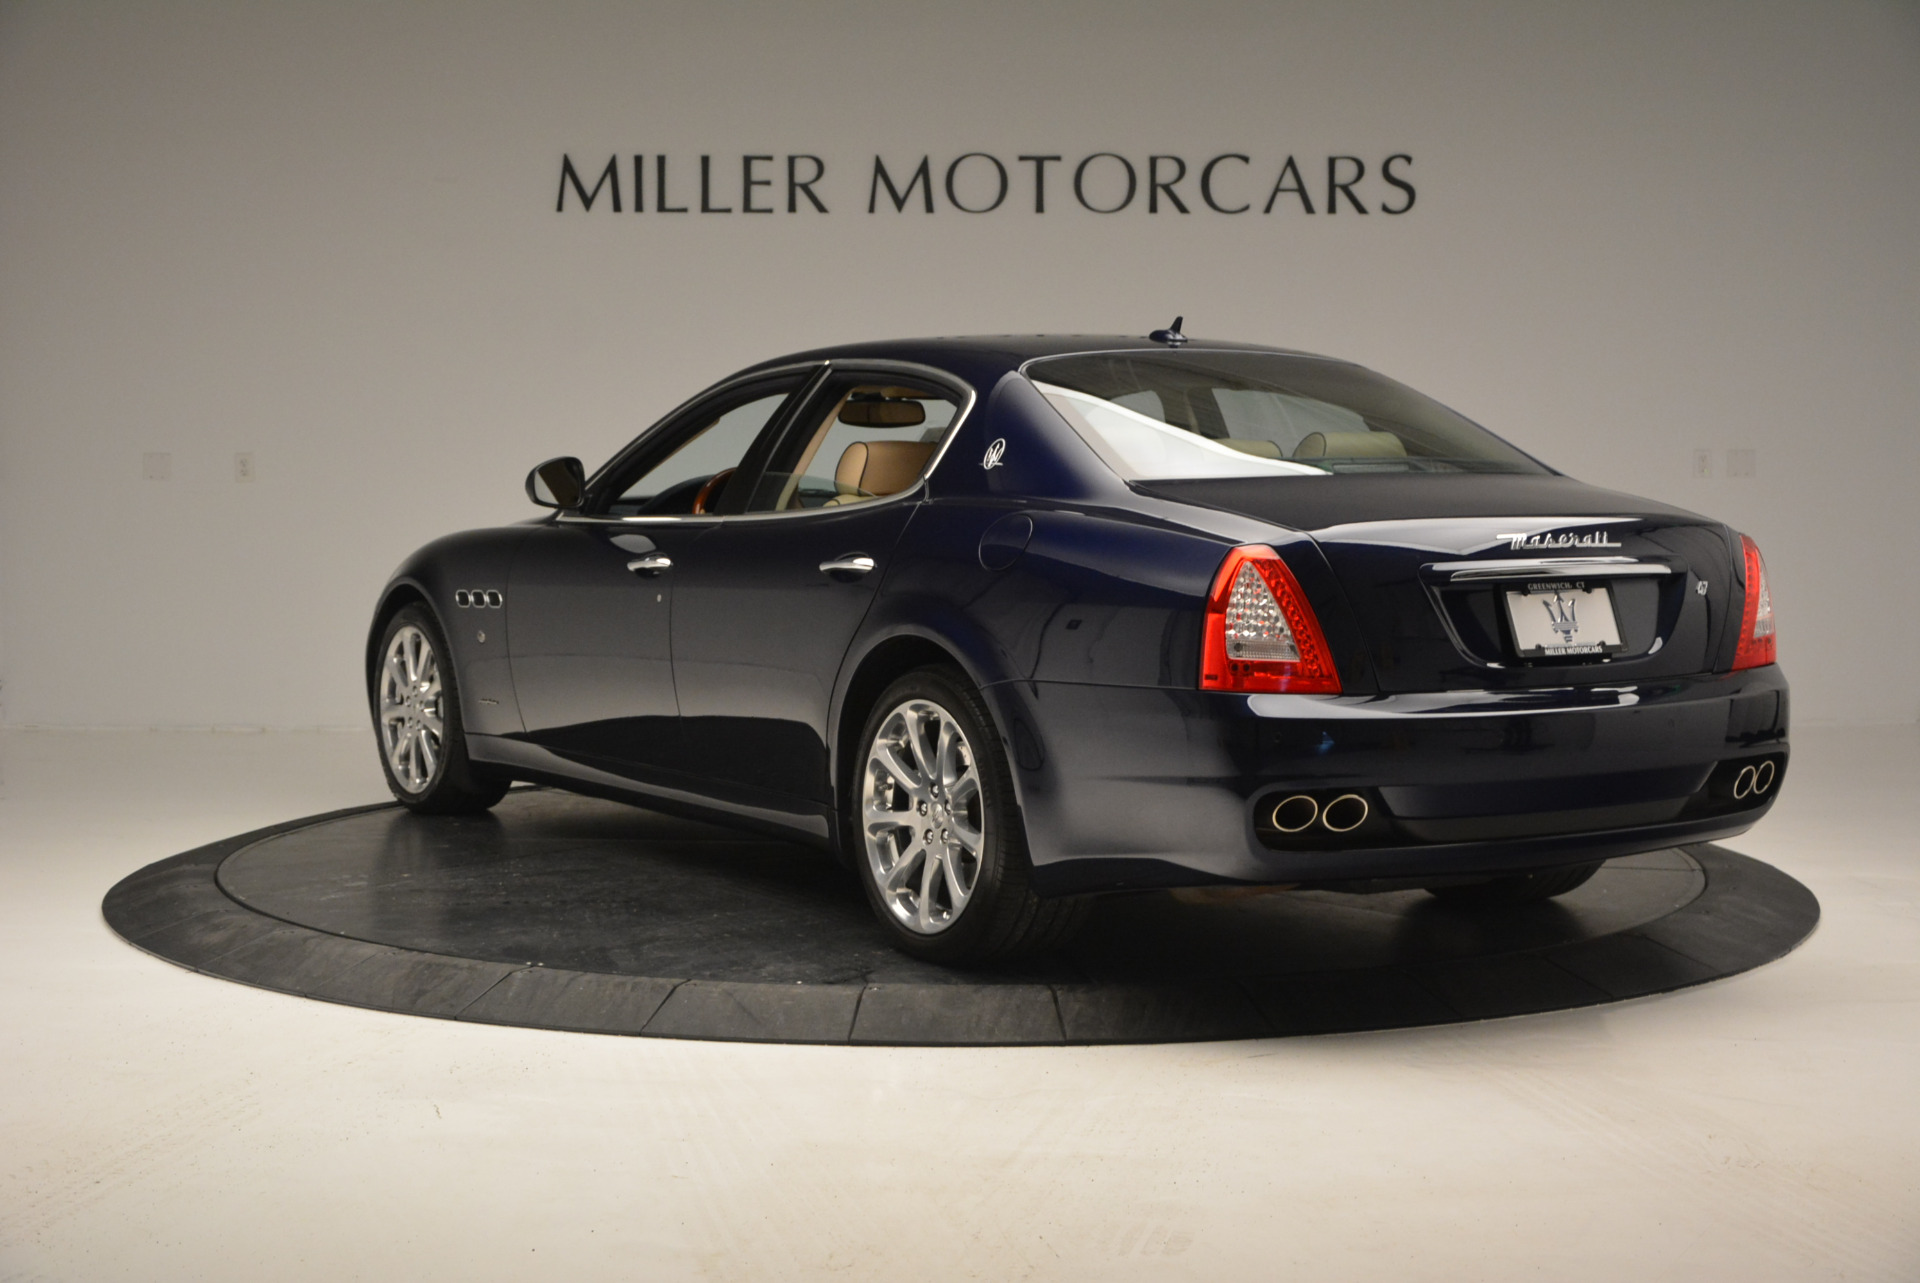 Used 2010 Maserati Quattroporte S For Sale In Westport, CT 795_p5